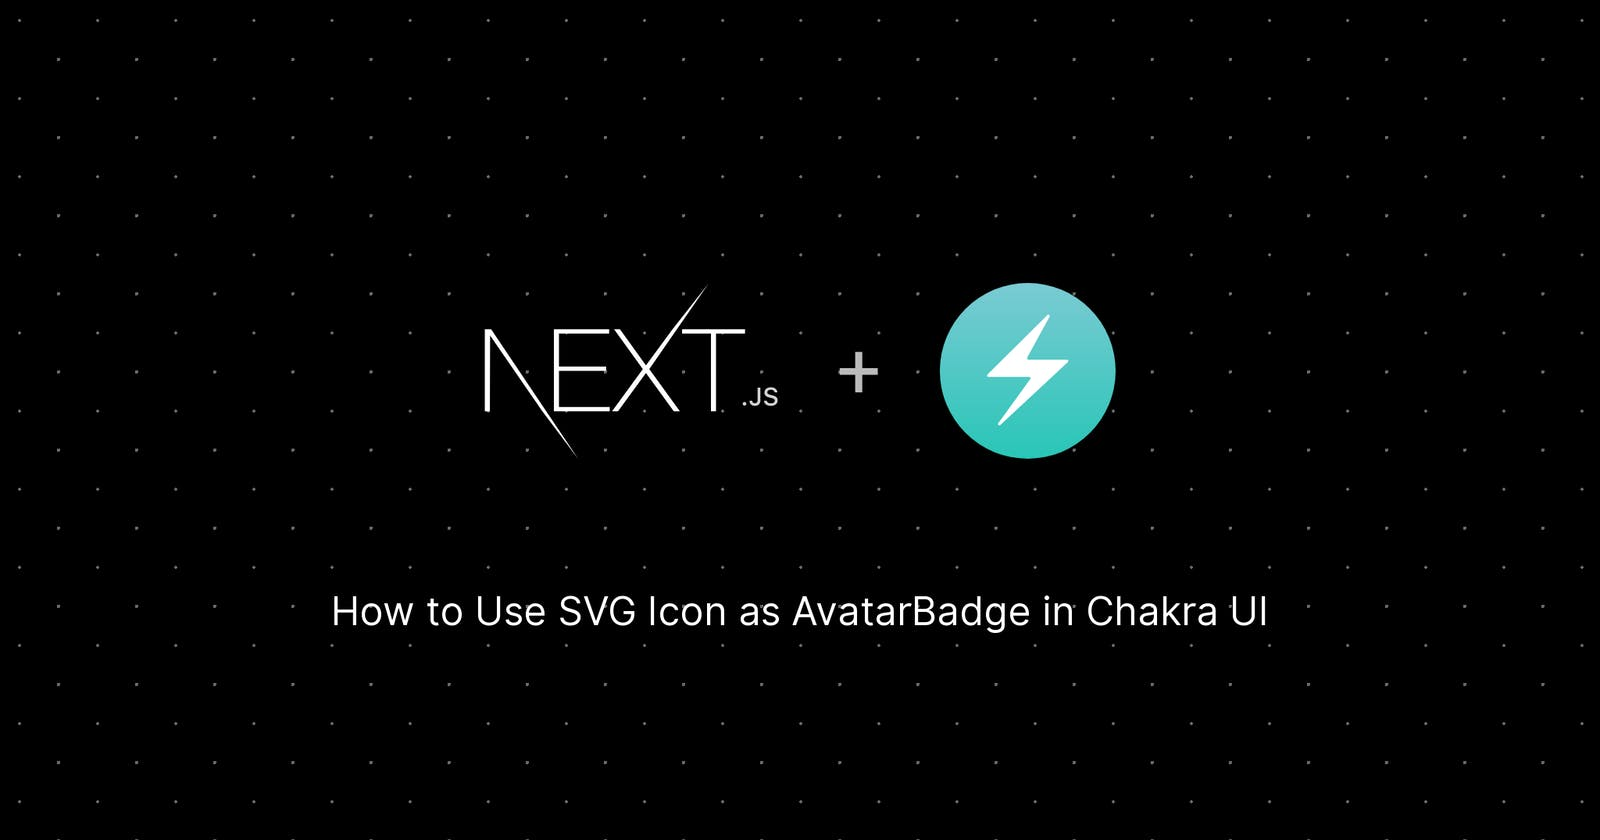 How to Use SVG Icon as AvatarBadge in Chakra UI